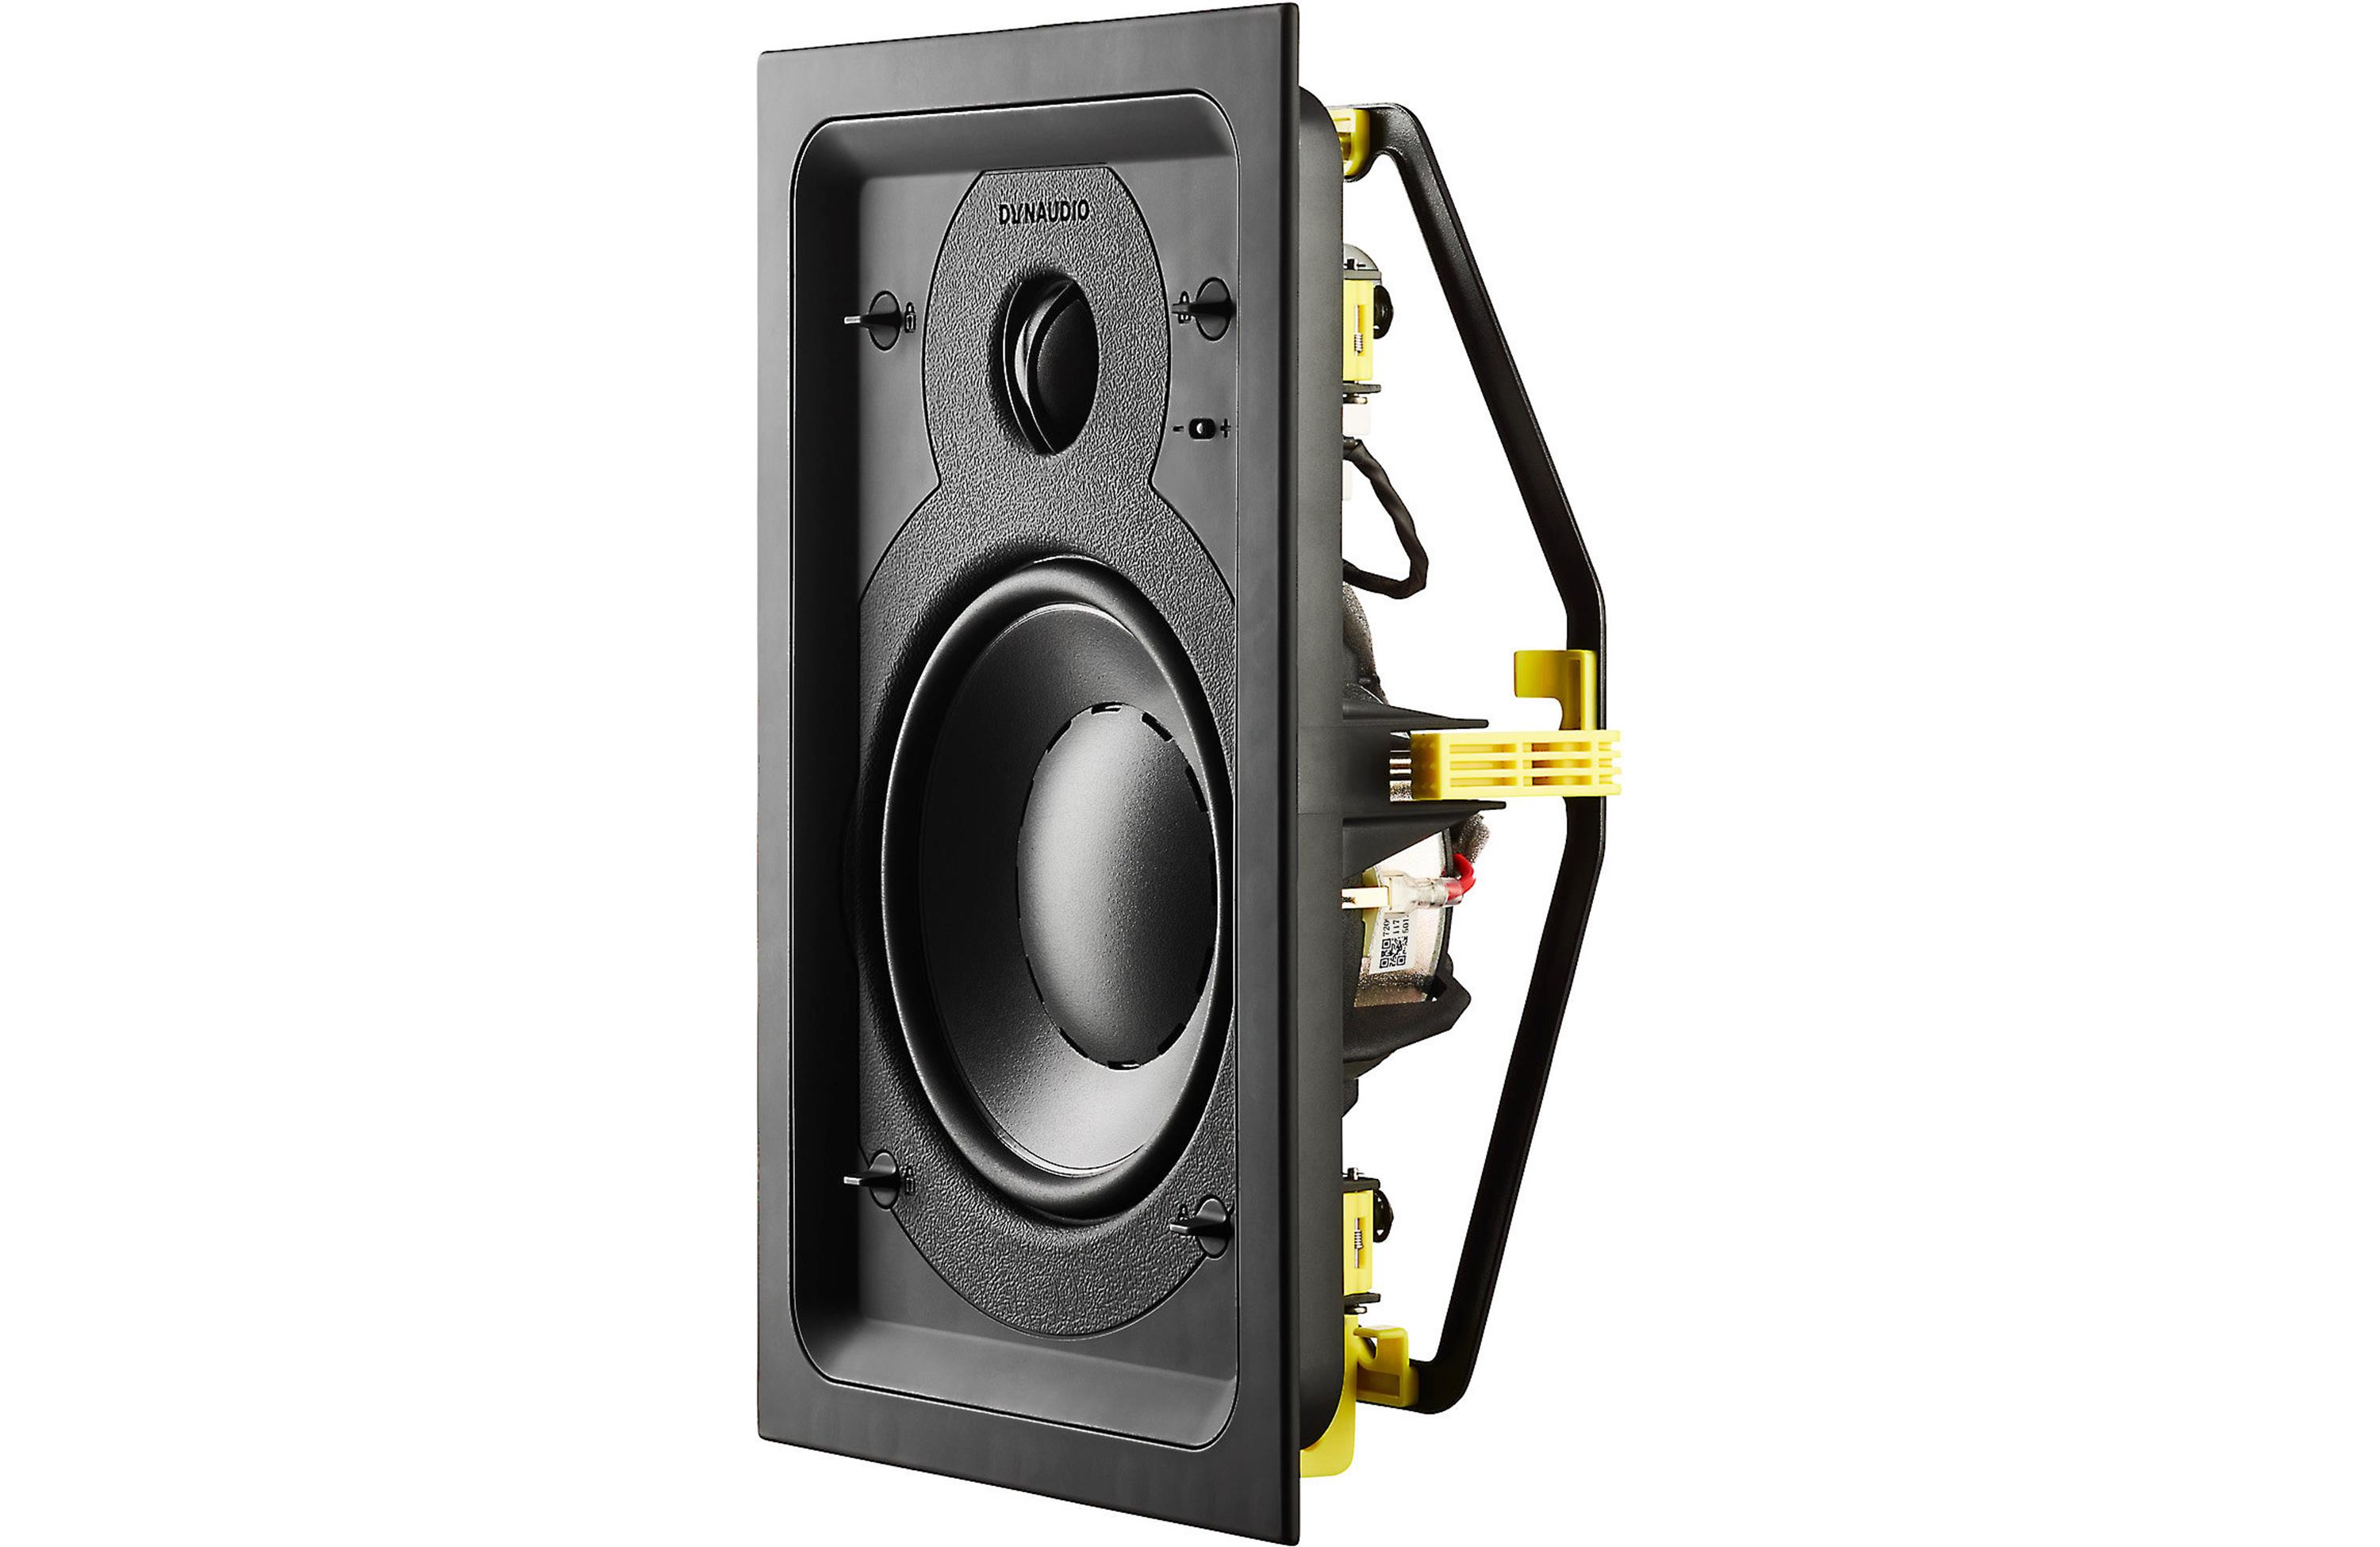 Dynaudio S4-W65 - High-end vestavný reproduktor do stěny